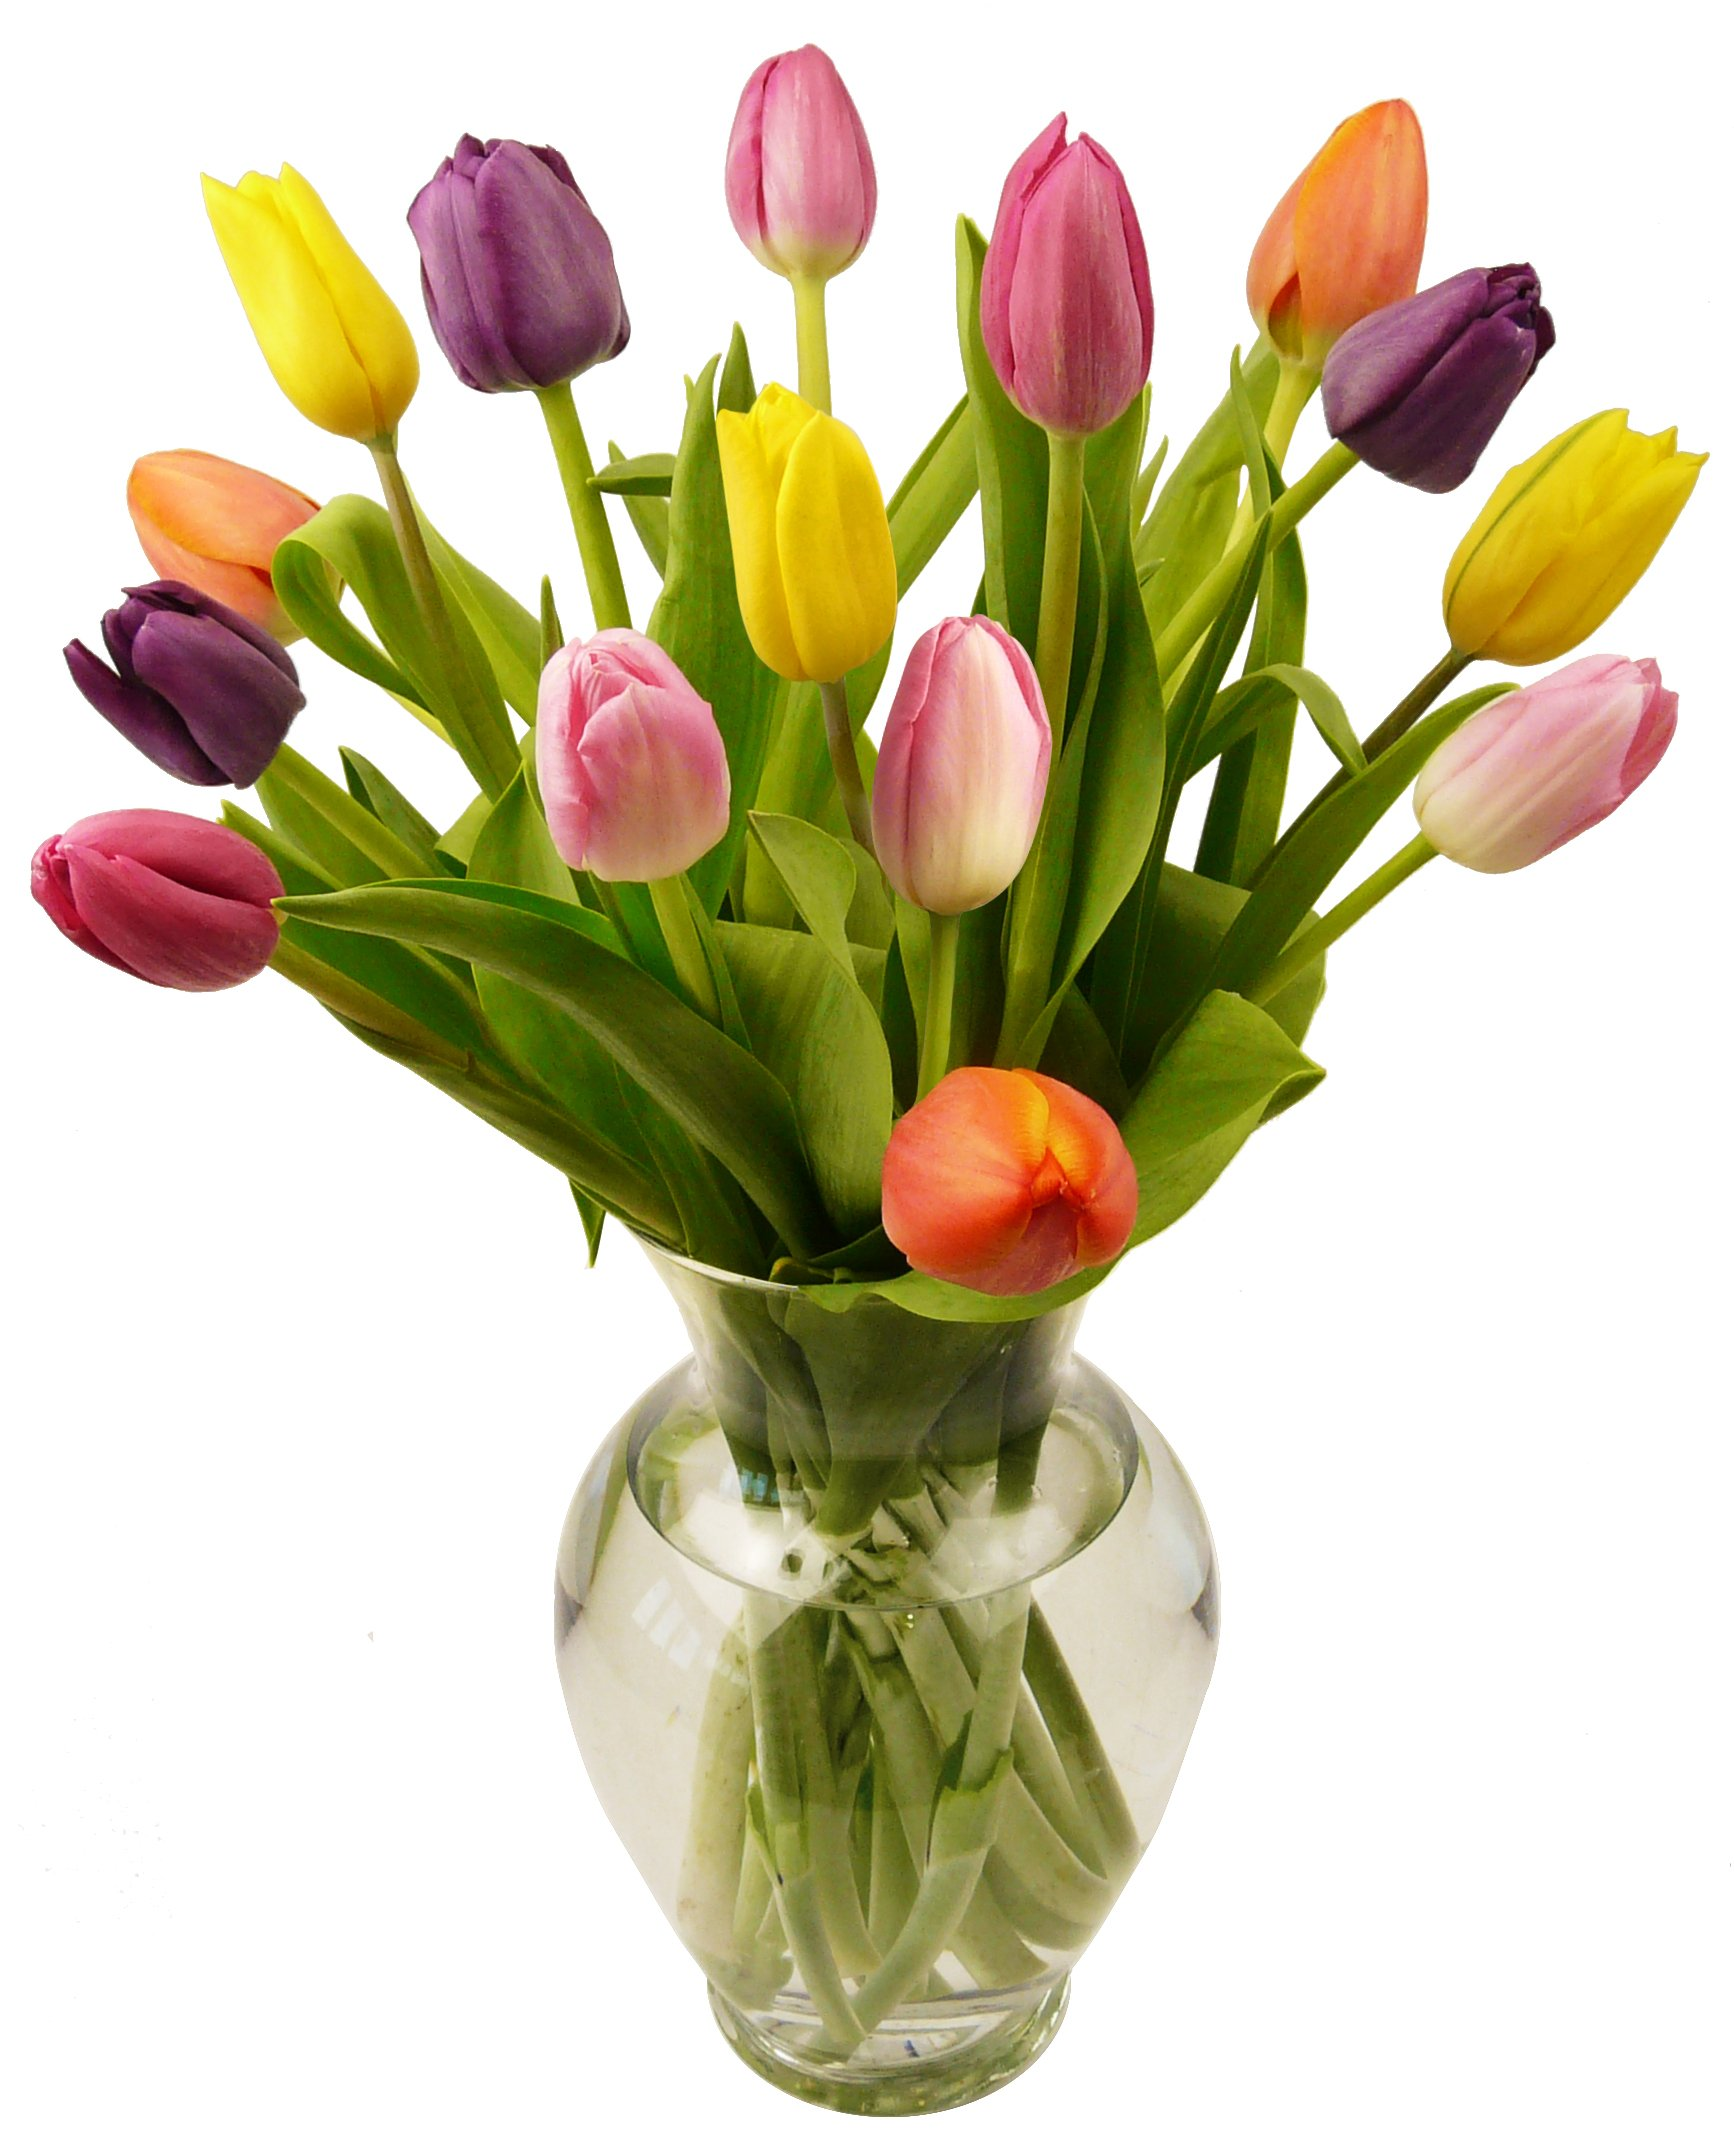 Next Day Flowers Prestige flowers are the leaders in next day flower deliveries across the United Kingdom. Our flowers by post arrangements are delivered safely 7 days a week via our fleet of next day couriers with an unrivalled 5 star service.